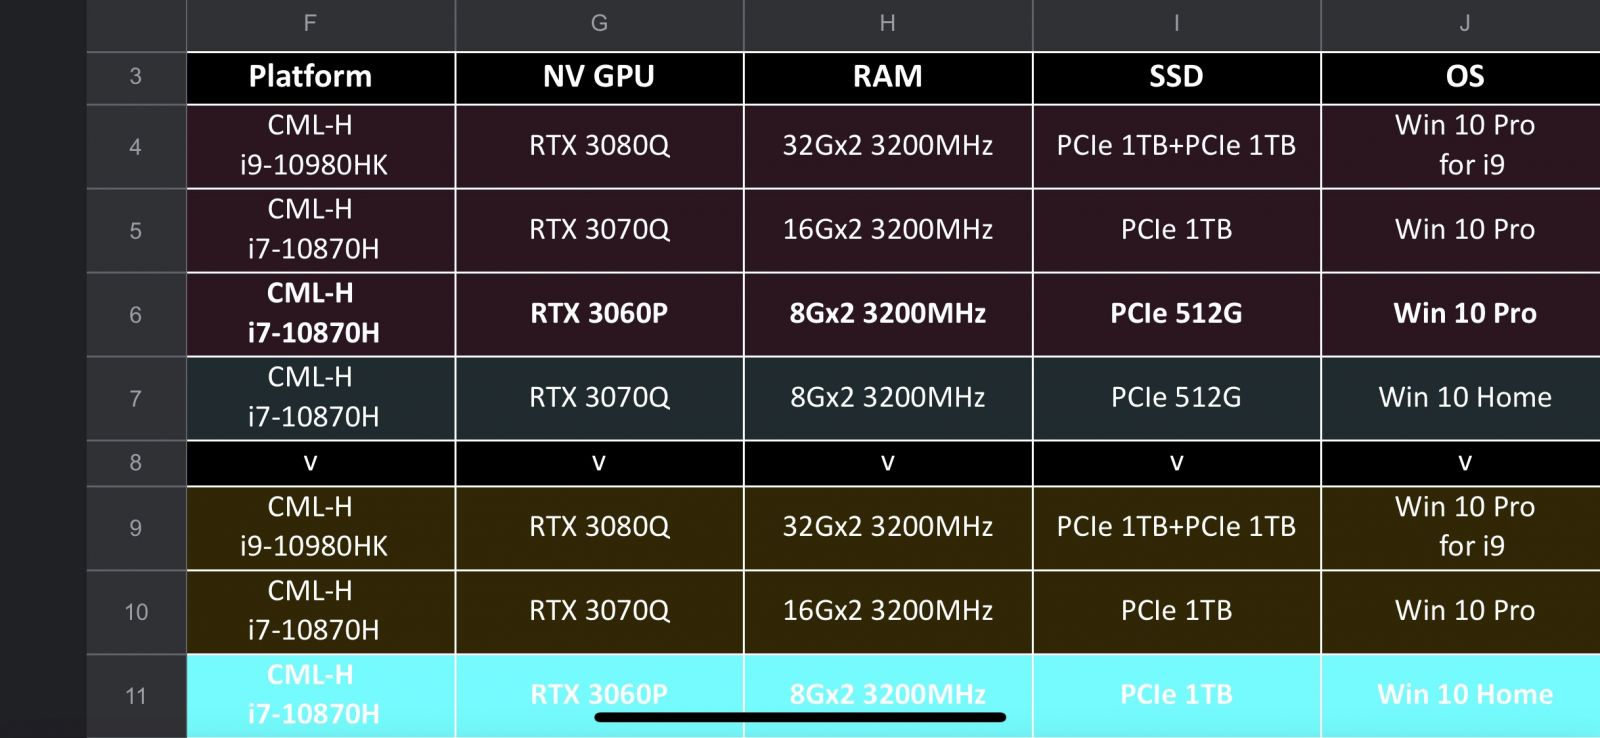 NVIDIA GeForce RTX 30 series mobile GPU